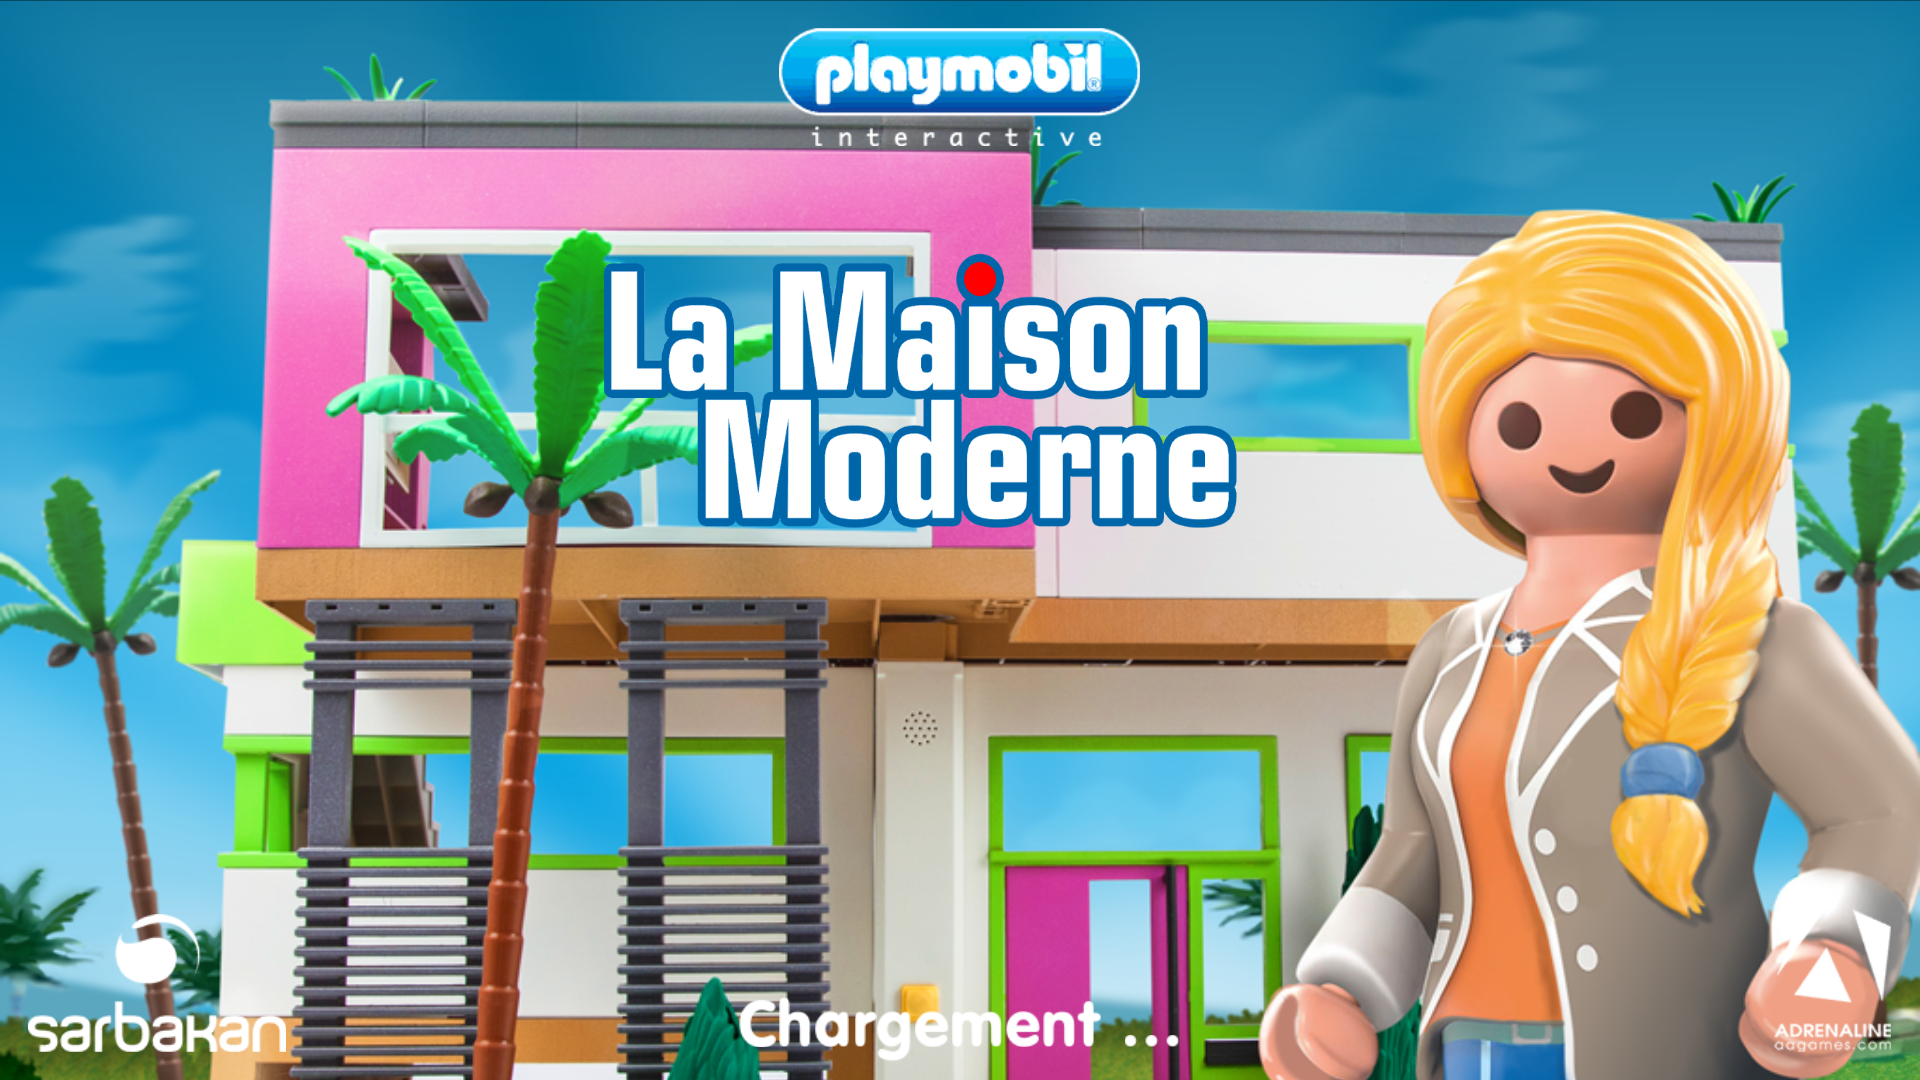 La maison moderne playmobil android 16 20 test photos for Avoir le wifi dans toute la maison